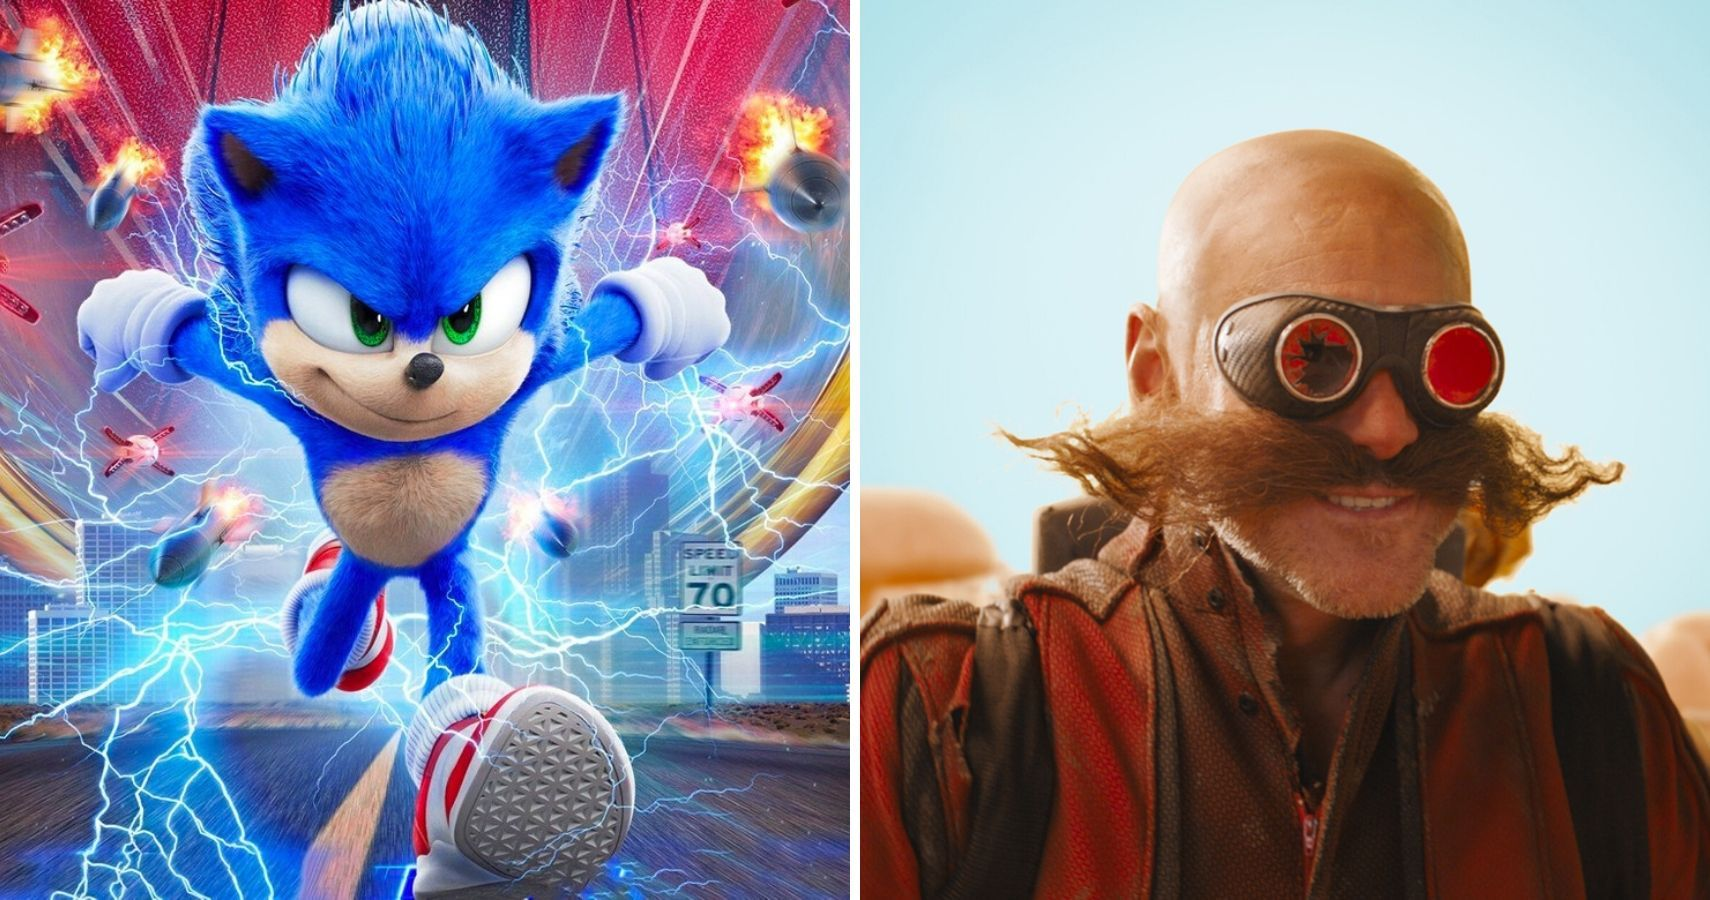 Sonic The Hedgehog Movie 10 Hidden Details About The Main Characters Everyone Missed